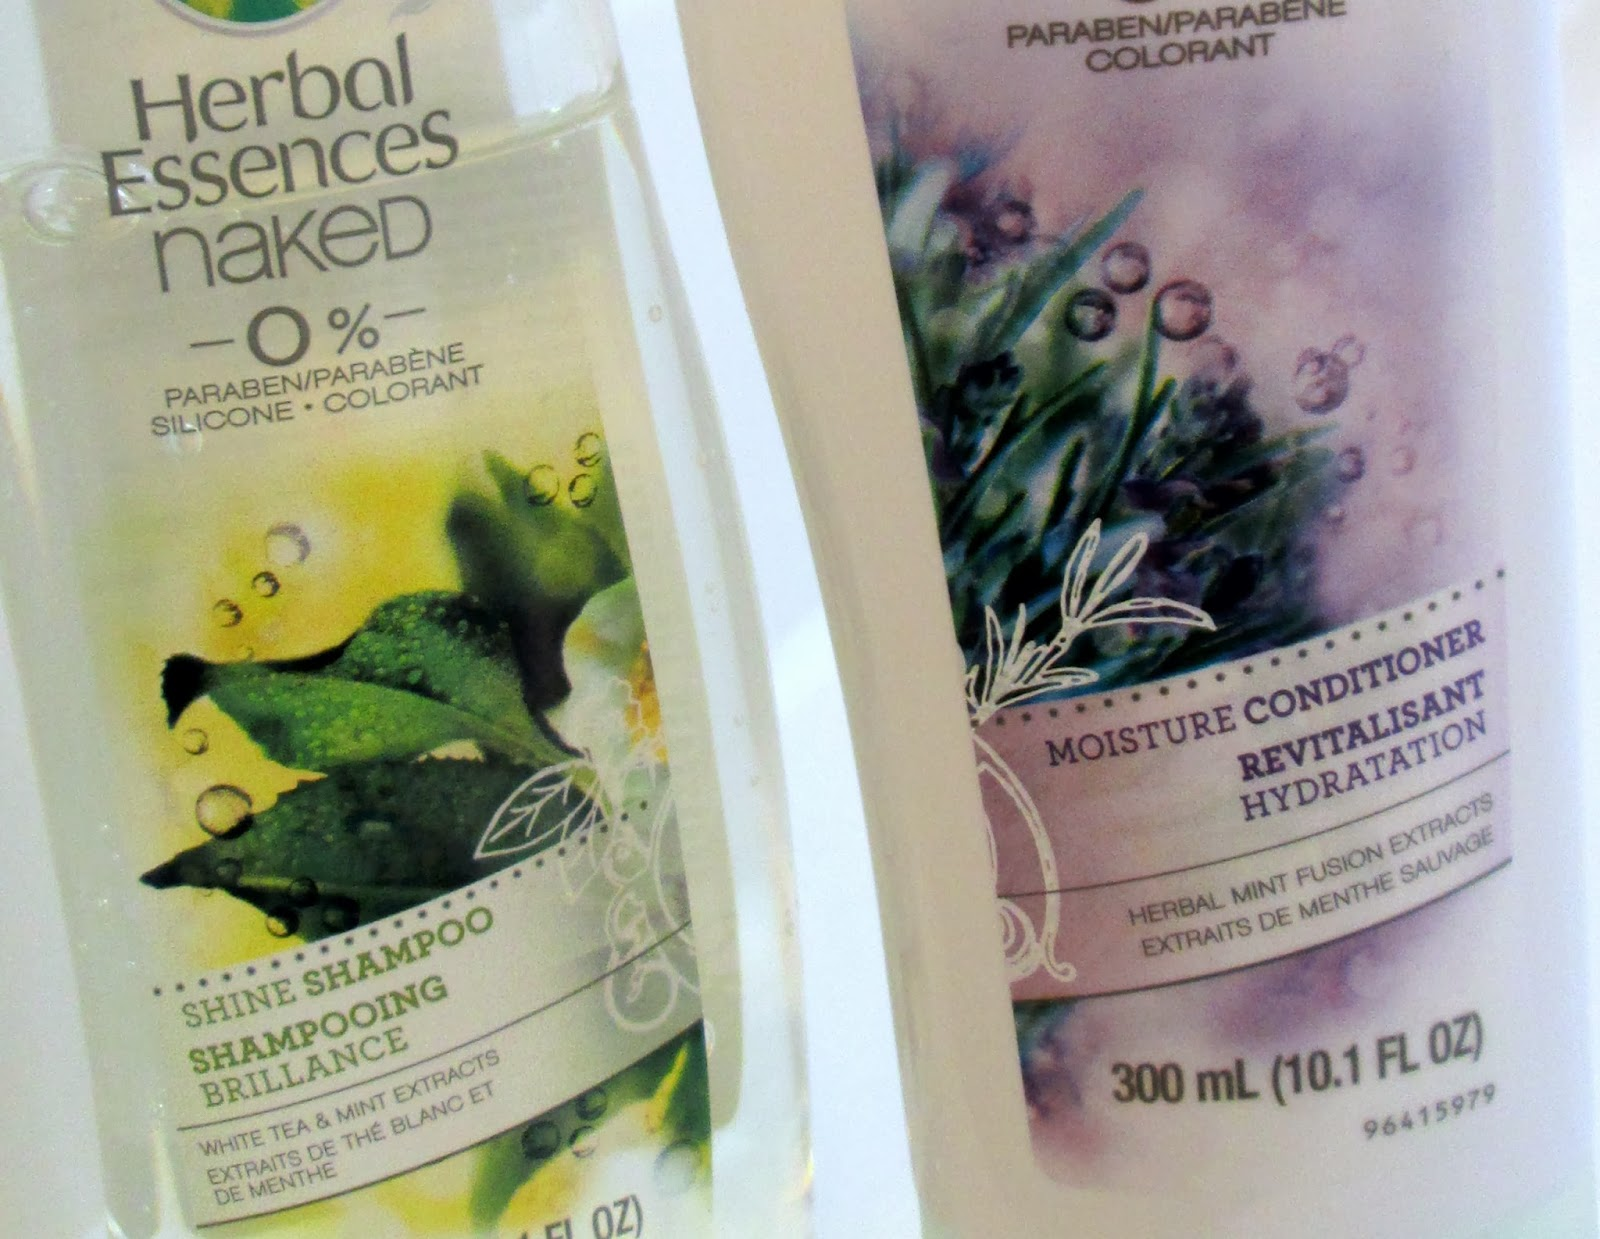 Herbal Essences naked Shampoo and Conditioner Paraben Free